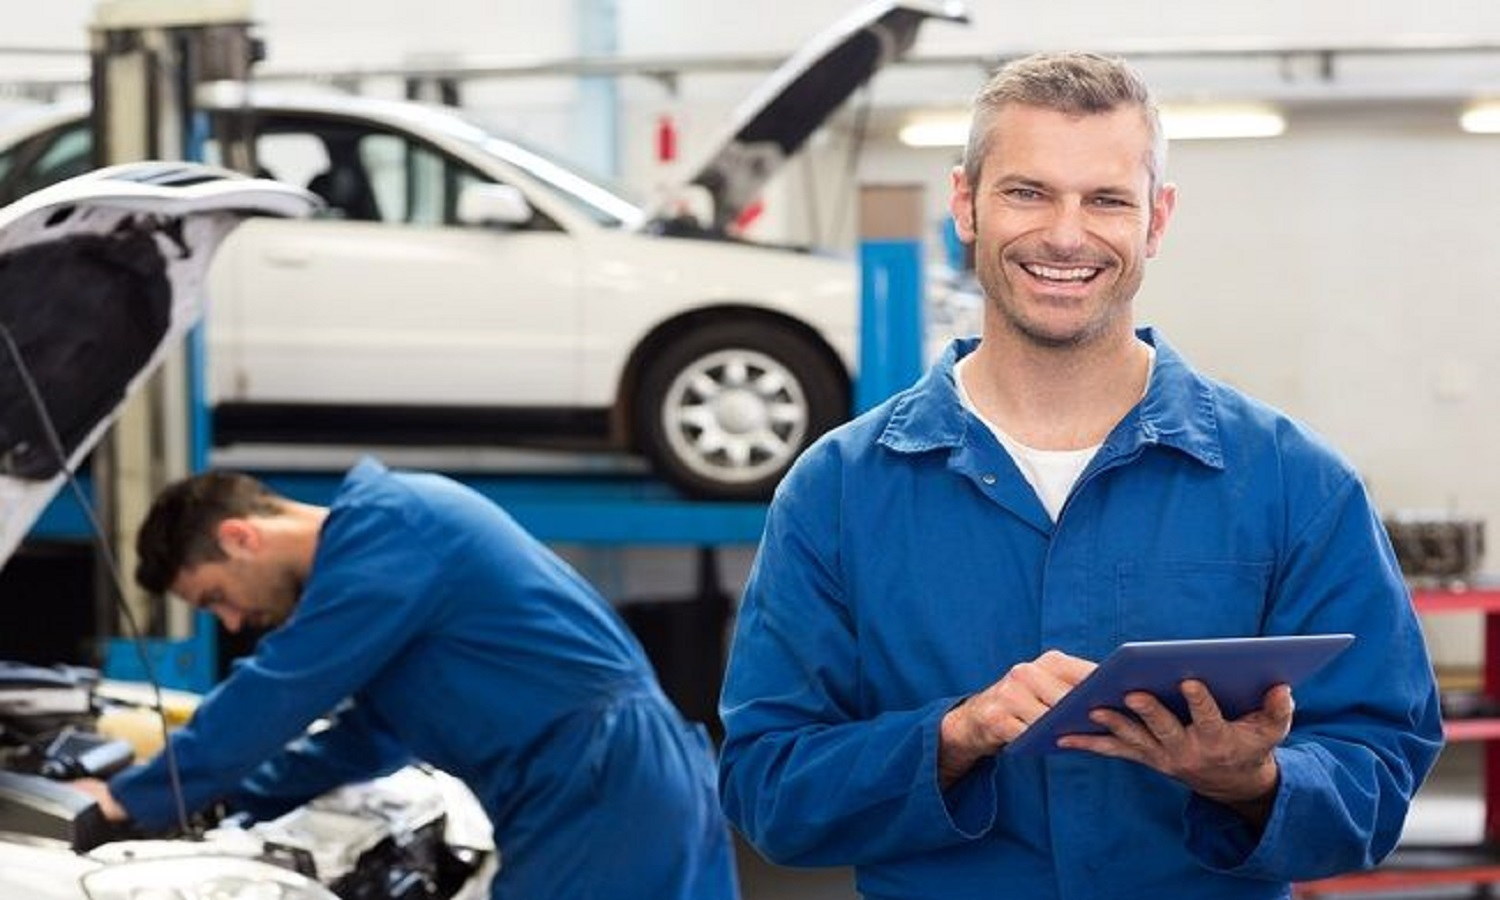 5 Major Points To Choose An Auto Repairs Shop For Your Car